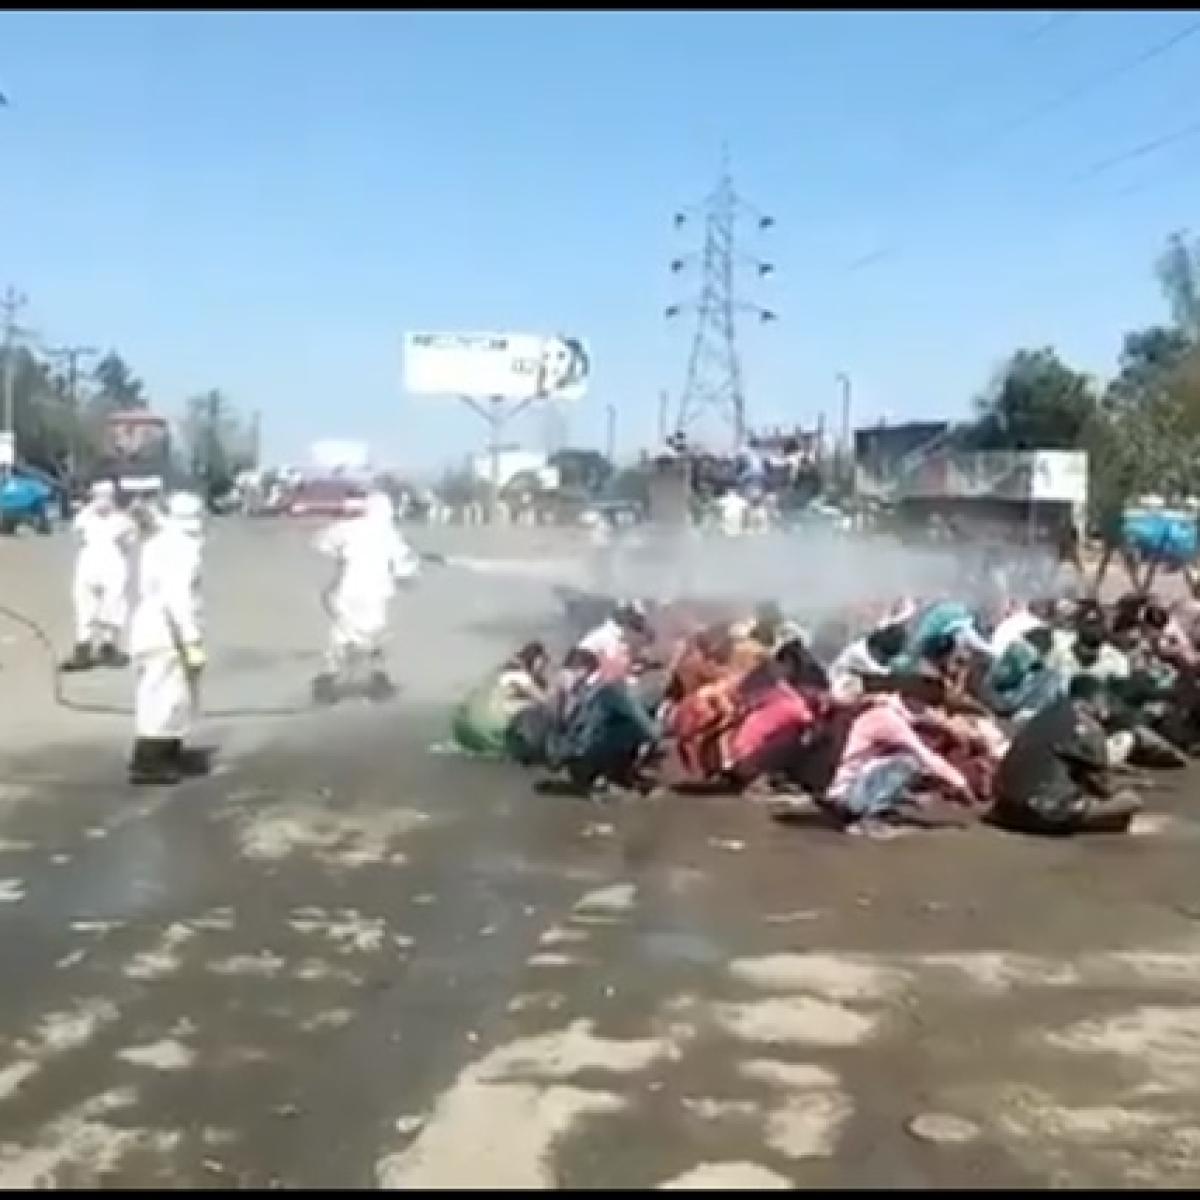 'Who are you trying to kill, coronavirus or humans?': Video of UP authorities spraying chemical solution on migrants goes viral; Twitter reacts